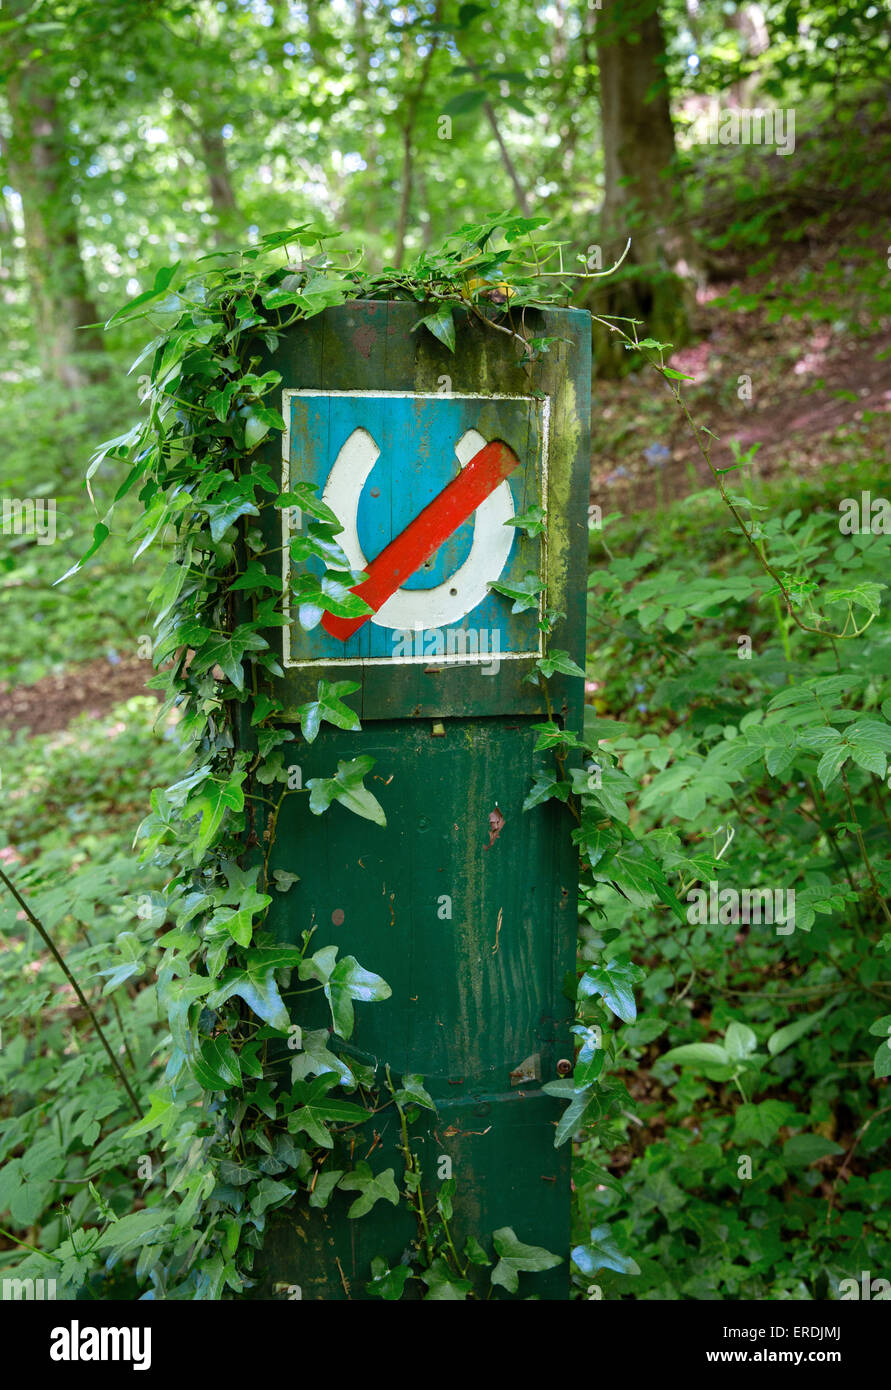 Ivy clad no horses sign at the entrance to an English wood UK - Stock Image